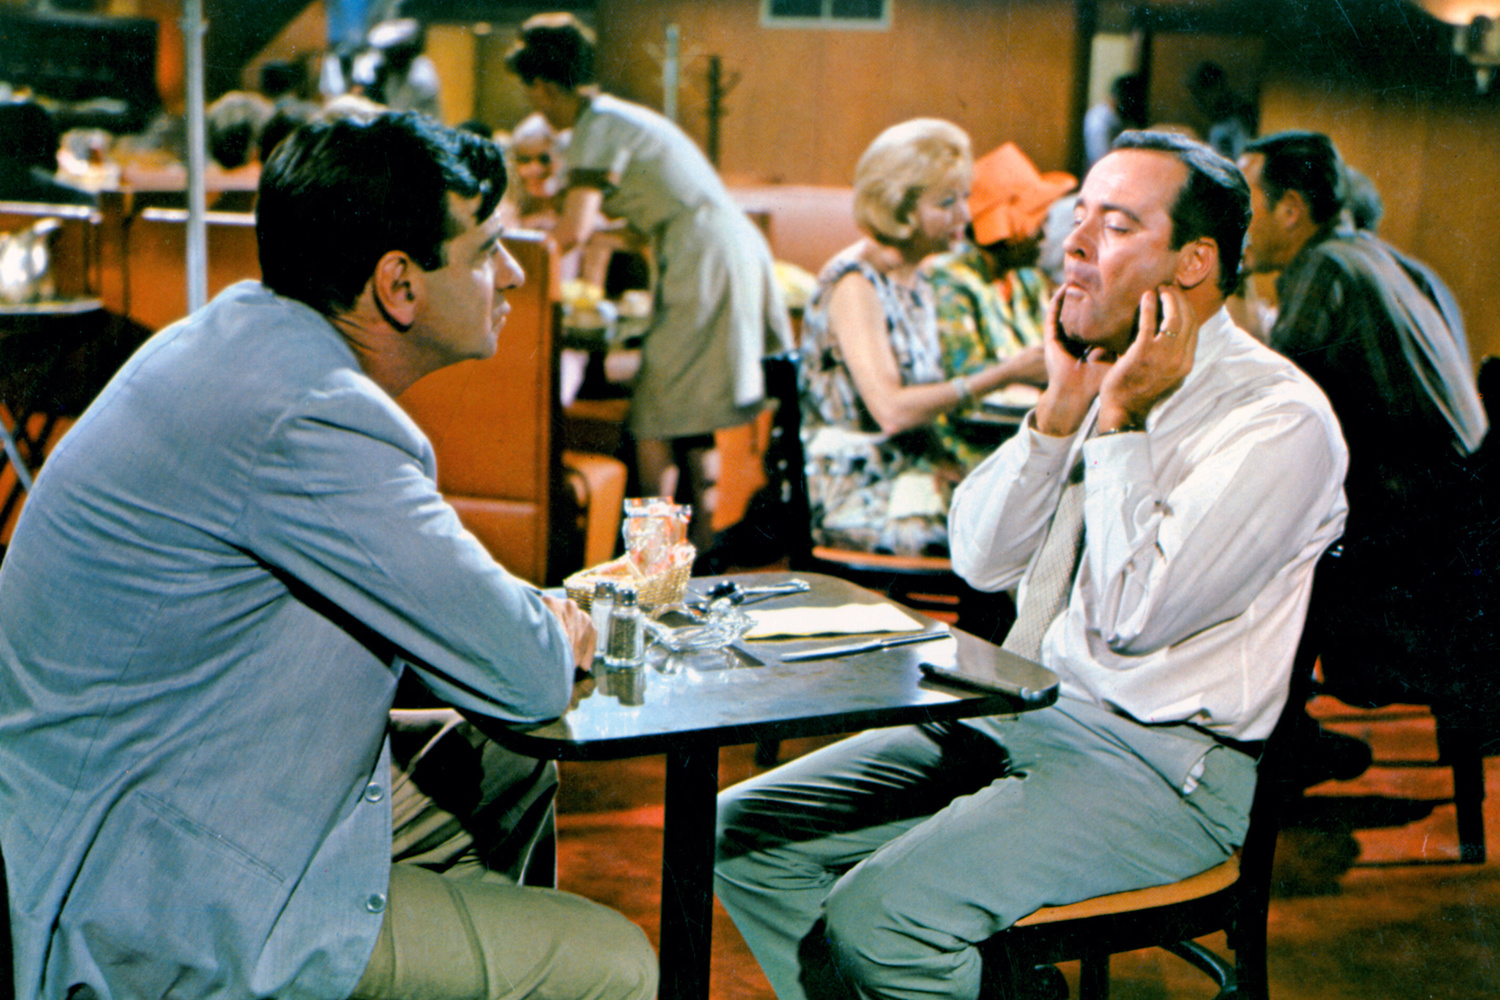 The Odd Couple. 1968. USA. Directed by Gene Saks. Courtesy Photofest